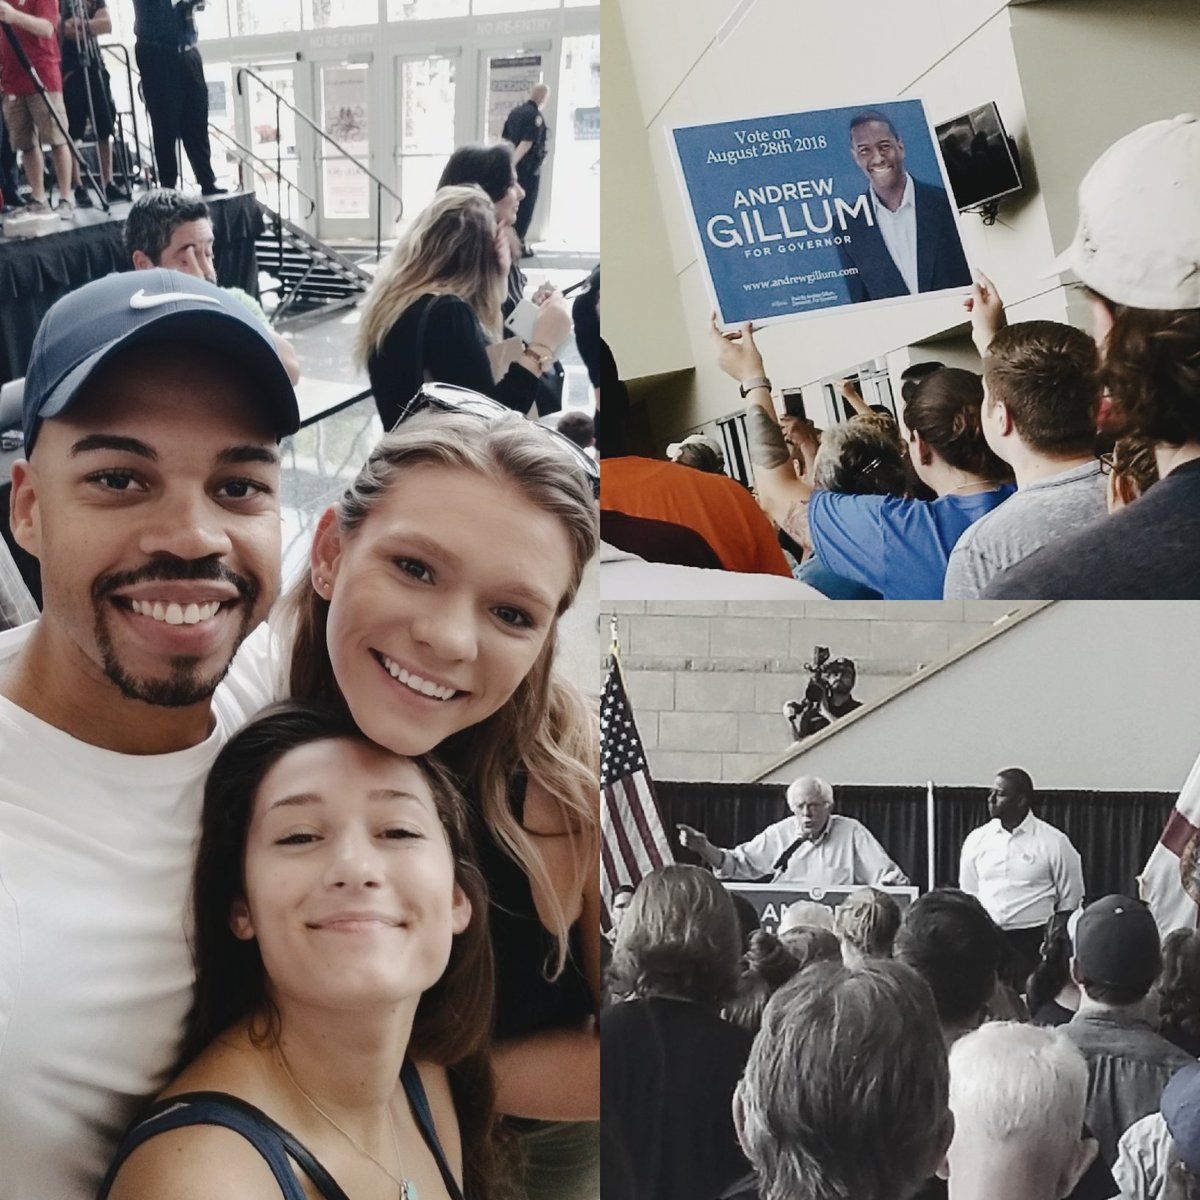 We took my niece to her first campaign rally today. Supporting @AndrewGillum for governor of Florida. Don&#39;t forget to vote! August 28th. #GillumForGovernor #GetOutTheVote @maddypope716 @Mr_WeSt504<br>http://pic.twitter.com/P7y5WYF5SQ